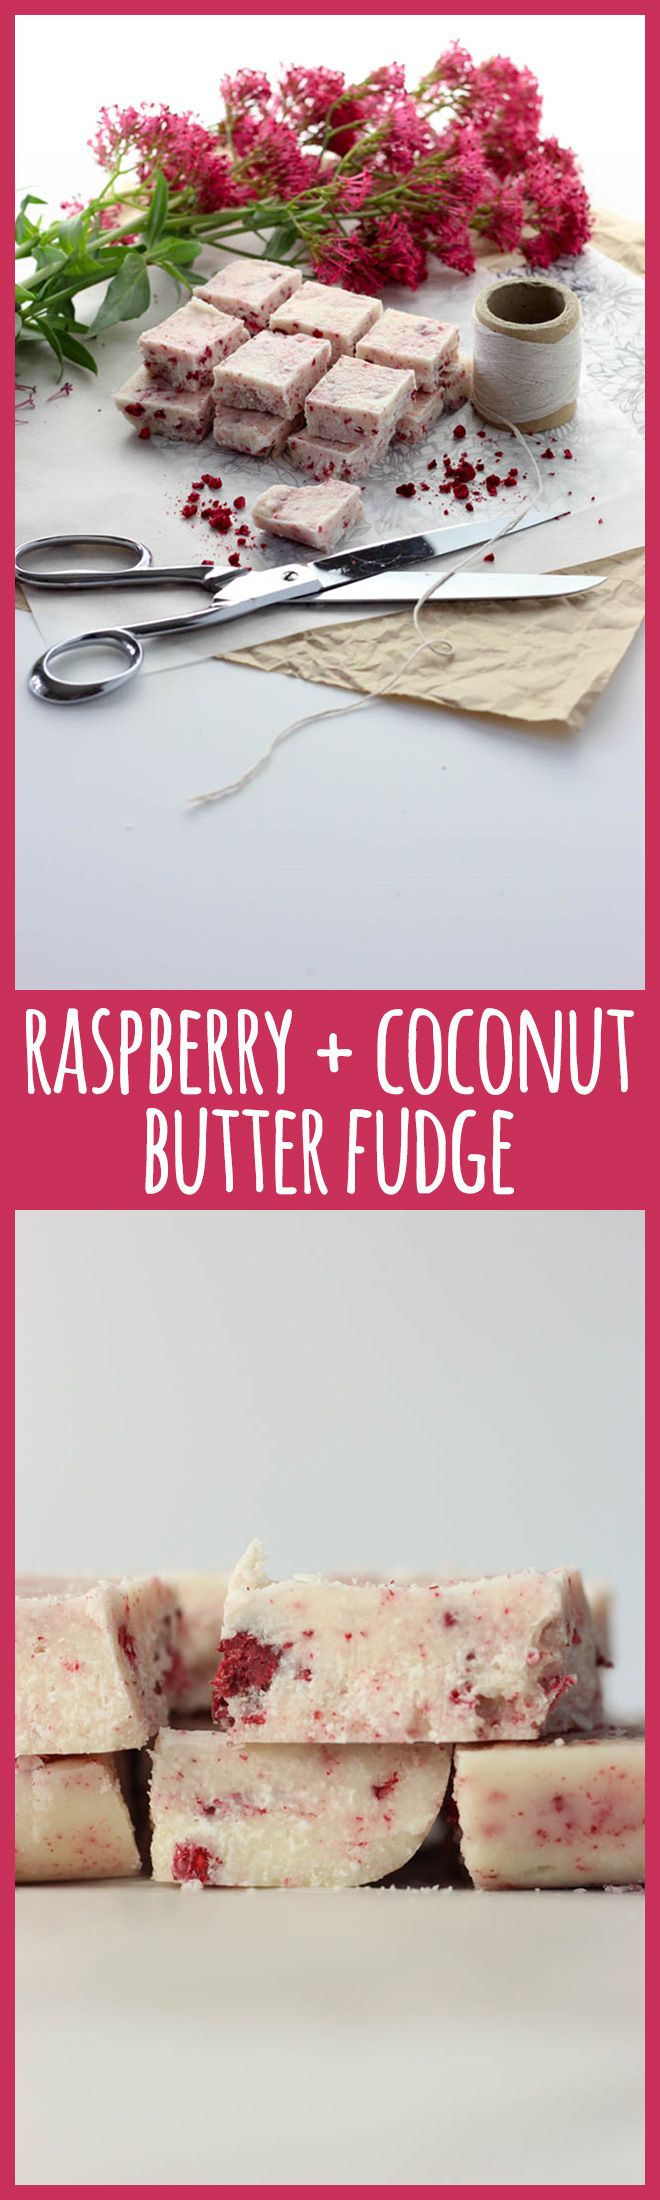 This pretty coconut butter fudge with freeze dried raspberries flecked through it is allergy friendly and a healthier sweet treat or edible gift for people who are trying to limit their sugar intake. #vegan #vegetarian #dairyfree #glutenfree #refinedsugarfree #paleo #lchf #fudge #raspberry #raspberries #coconut #coconutbutter #edible #gift #ediblegift #healthy #plantbased #realfood #recipes